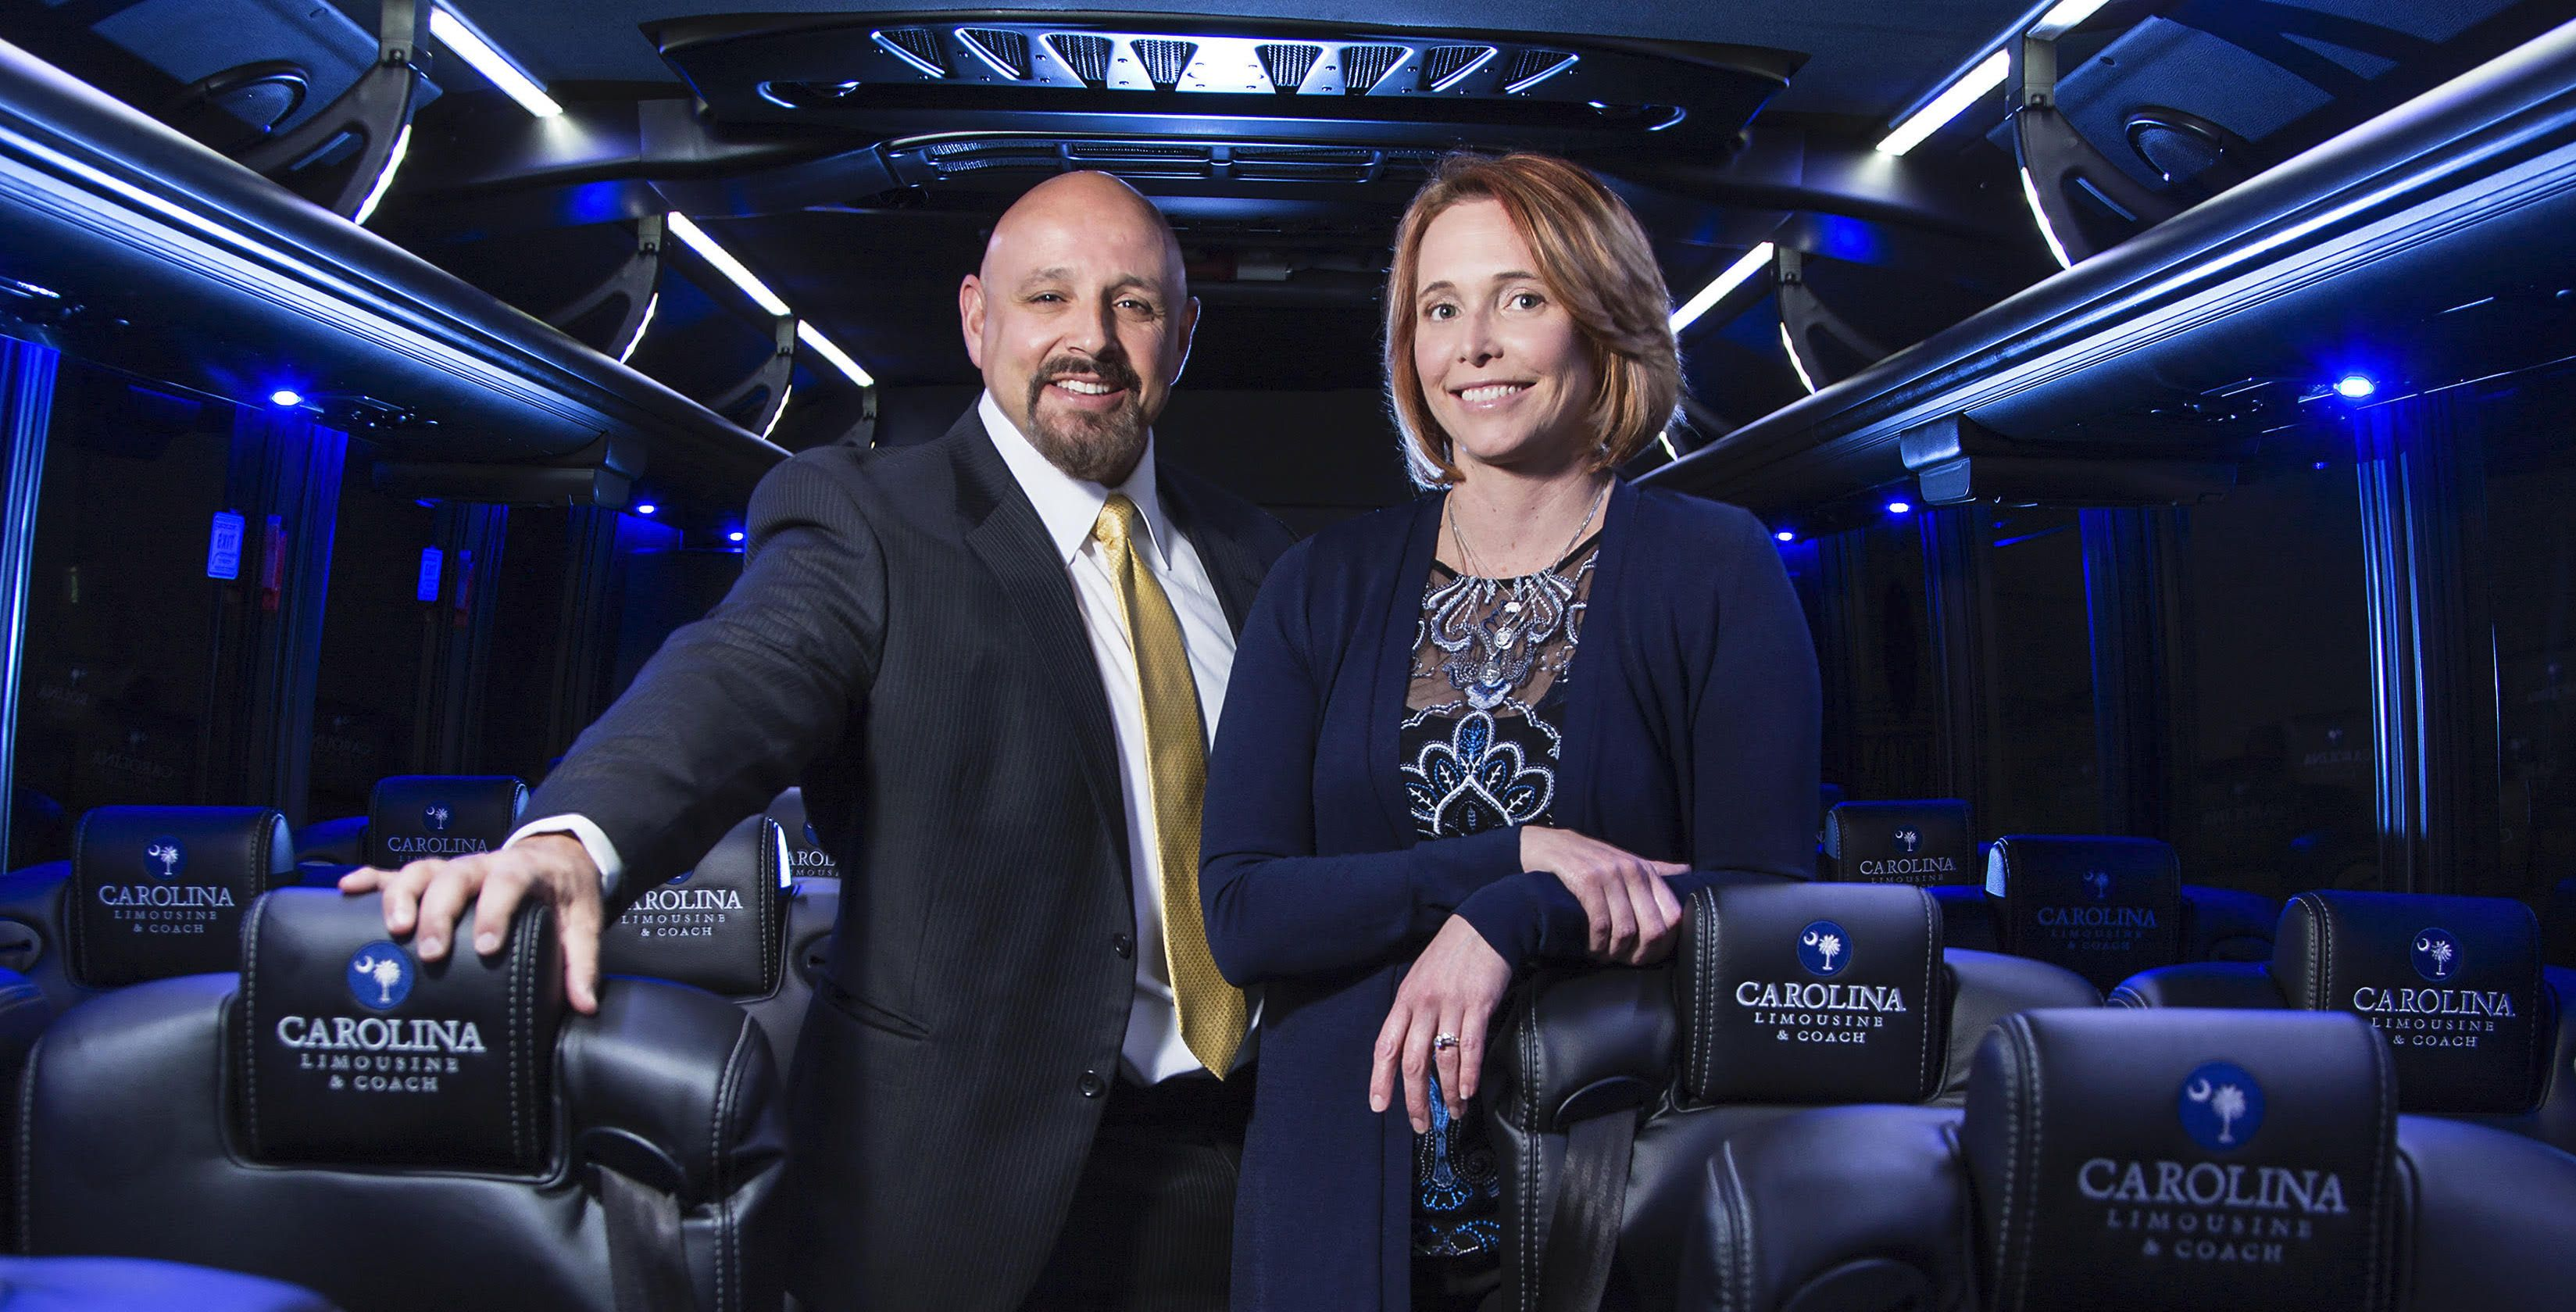 Carolina limousine coach where the journey is as